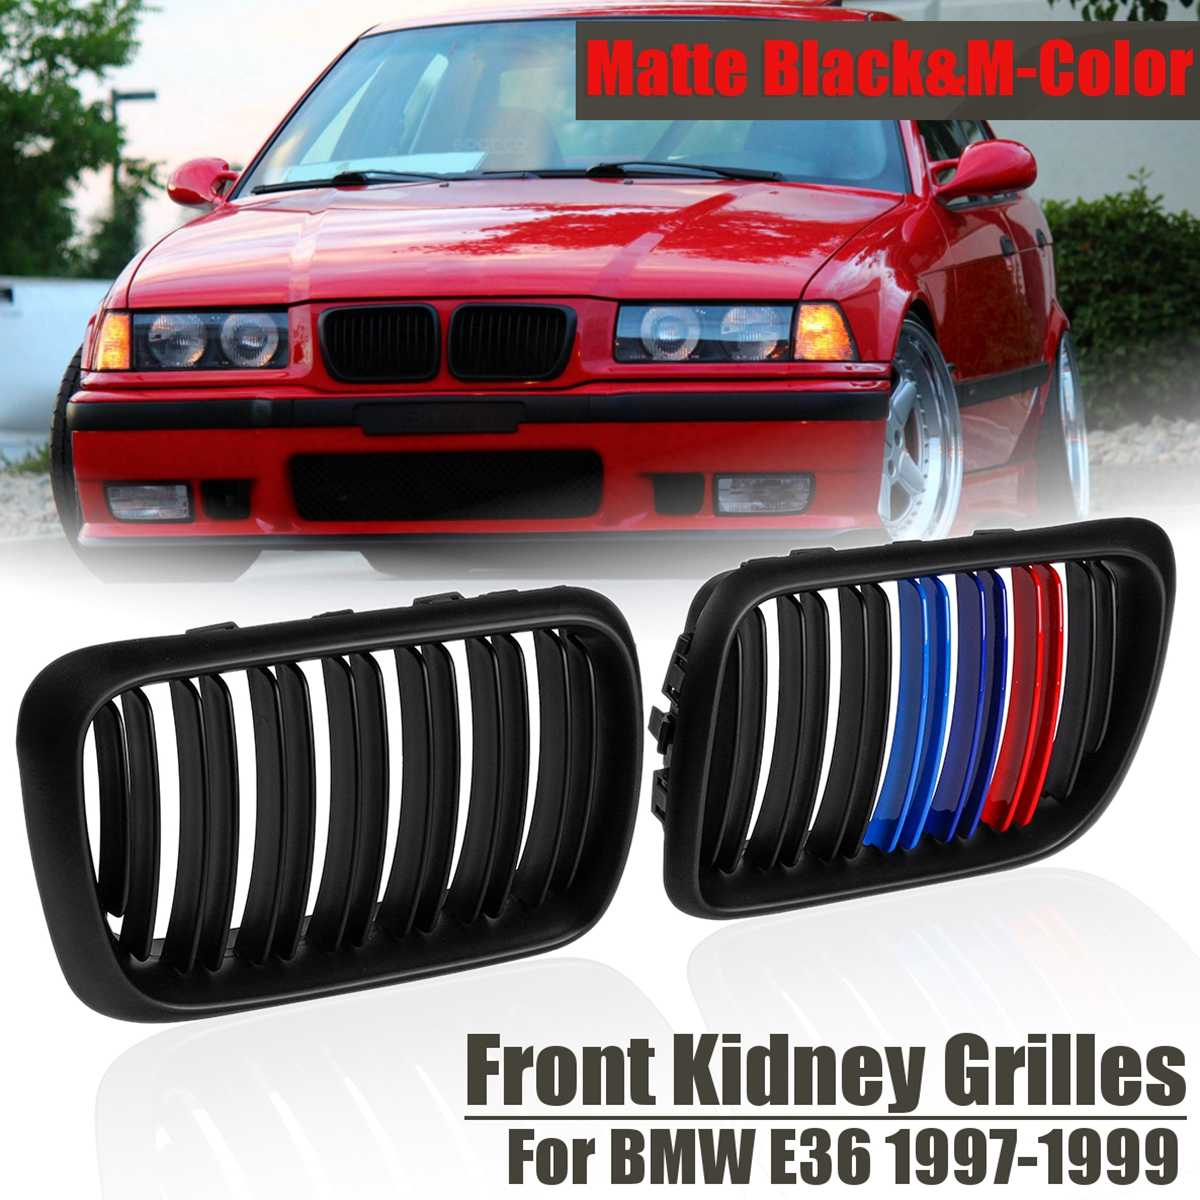 Pair Matte Black&M Color ABS Front Kidney Grilles For BMW E36 1997 1998 1999 Auto Racing Grills Car Styling 51138195152-in Racing Grills from Automobiles & Motorcycles    1